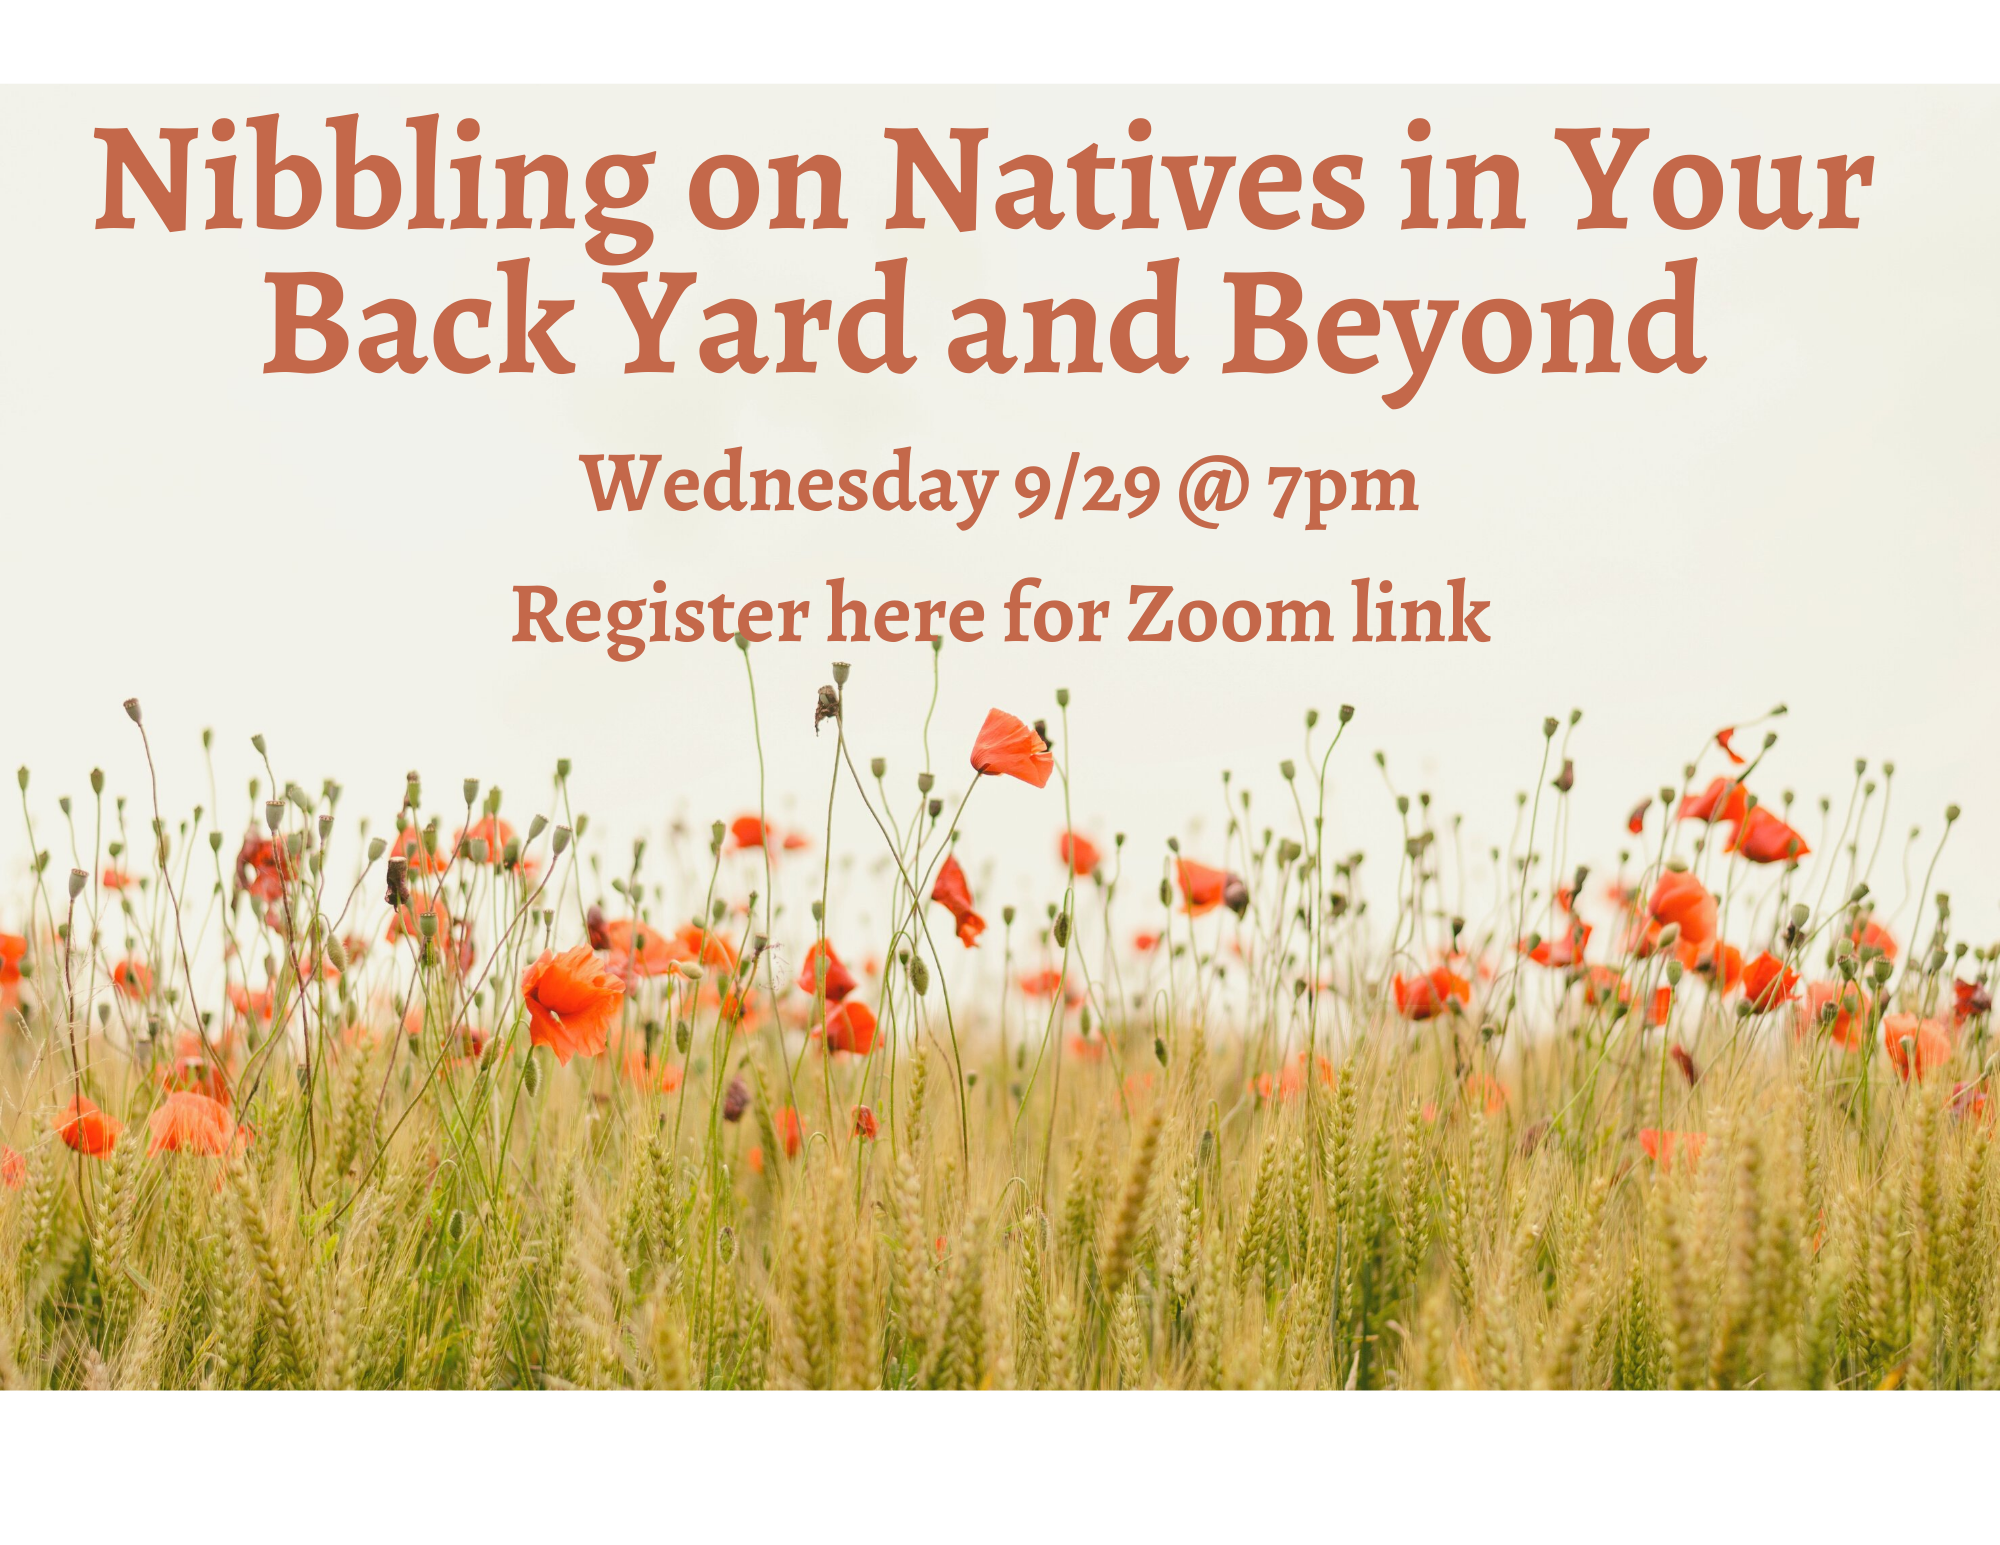 Nibbling on Natives in Your Back Yard 9/29 @ 7 pm click here to register.